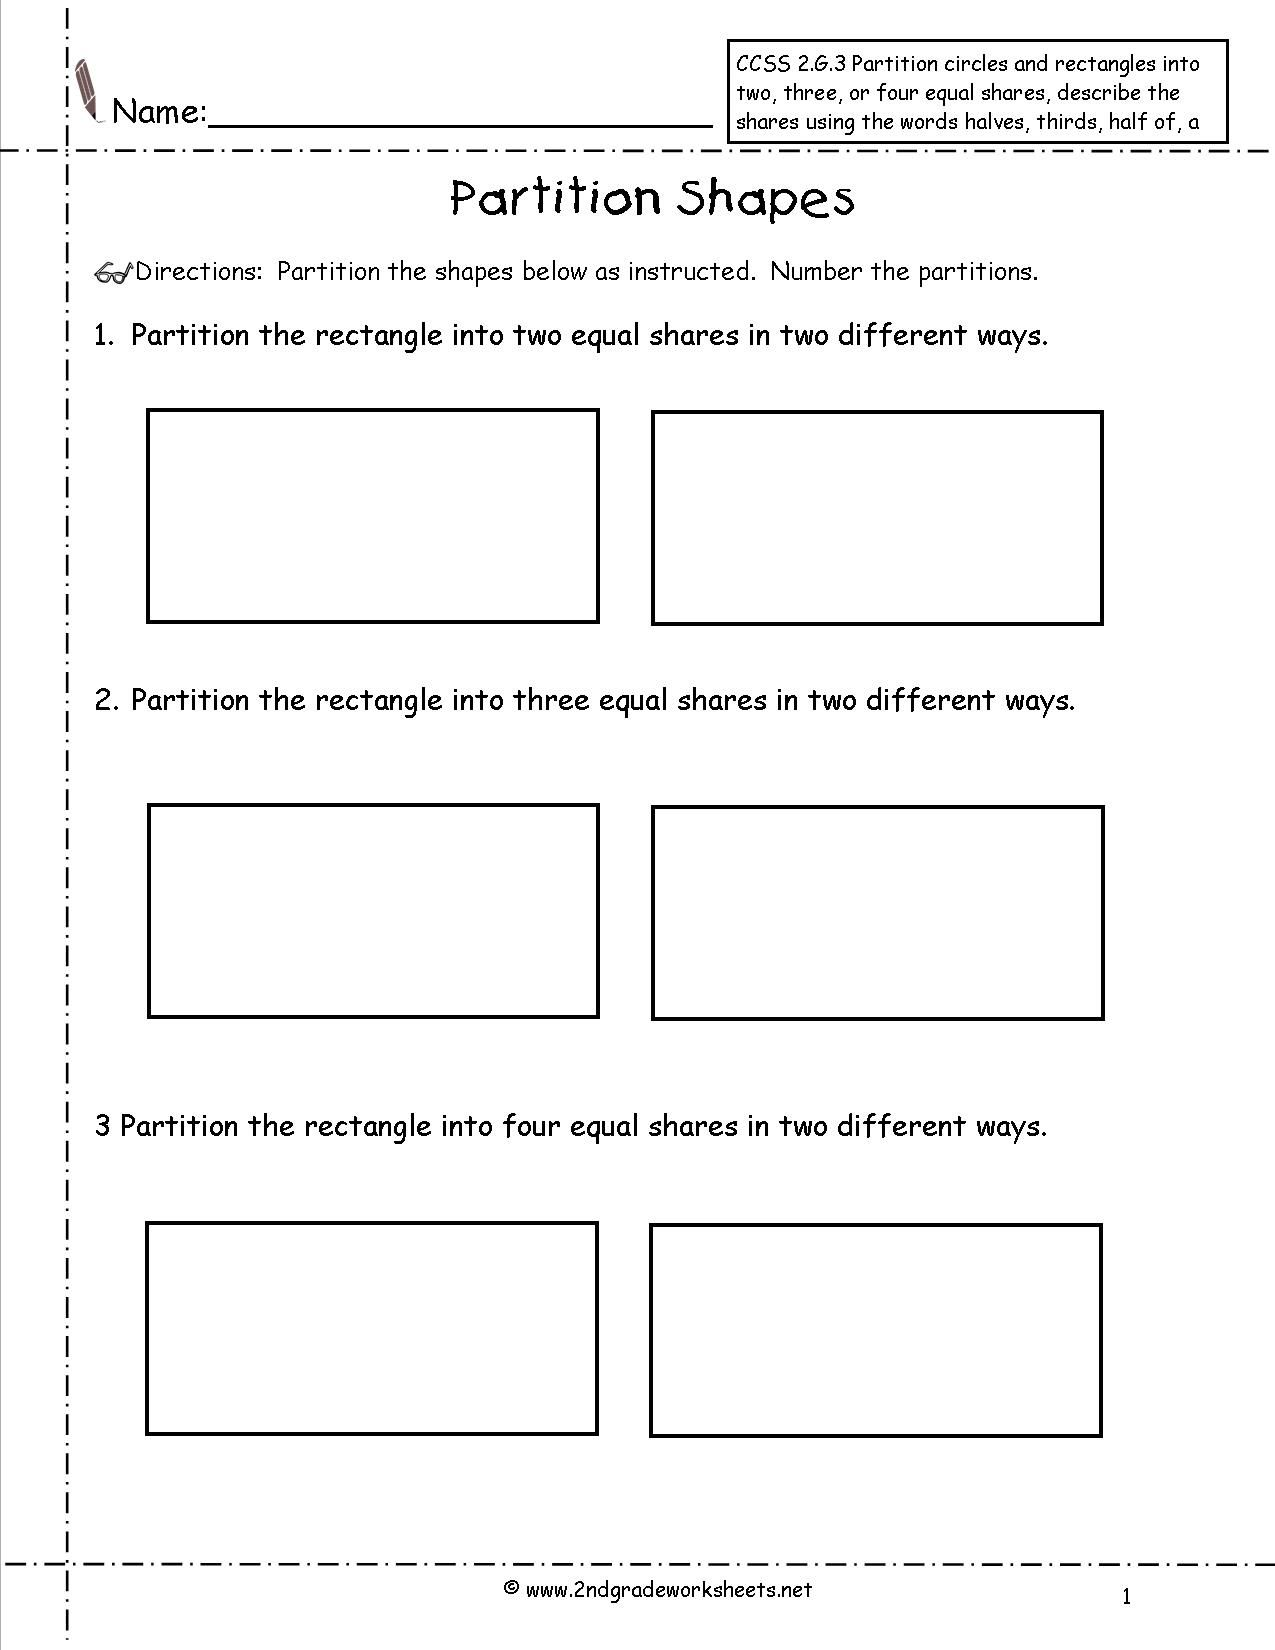 medium resolution of CCSS 2.G.3 Worksheets